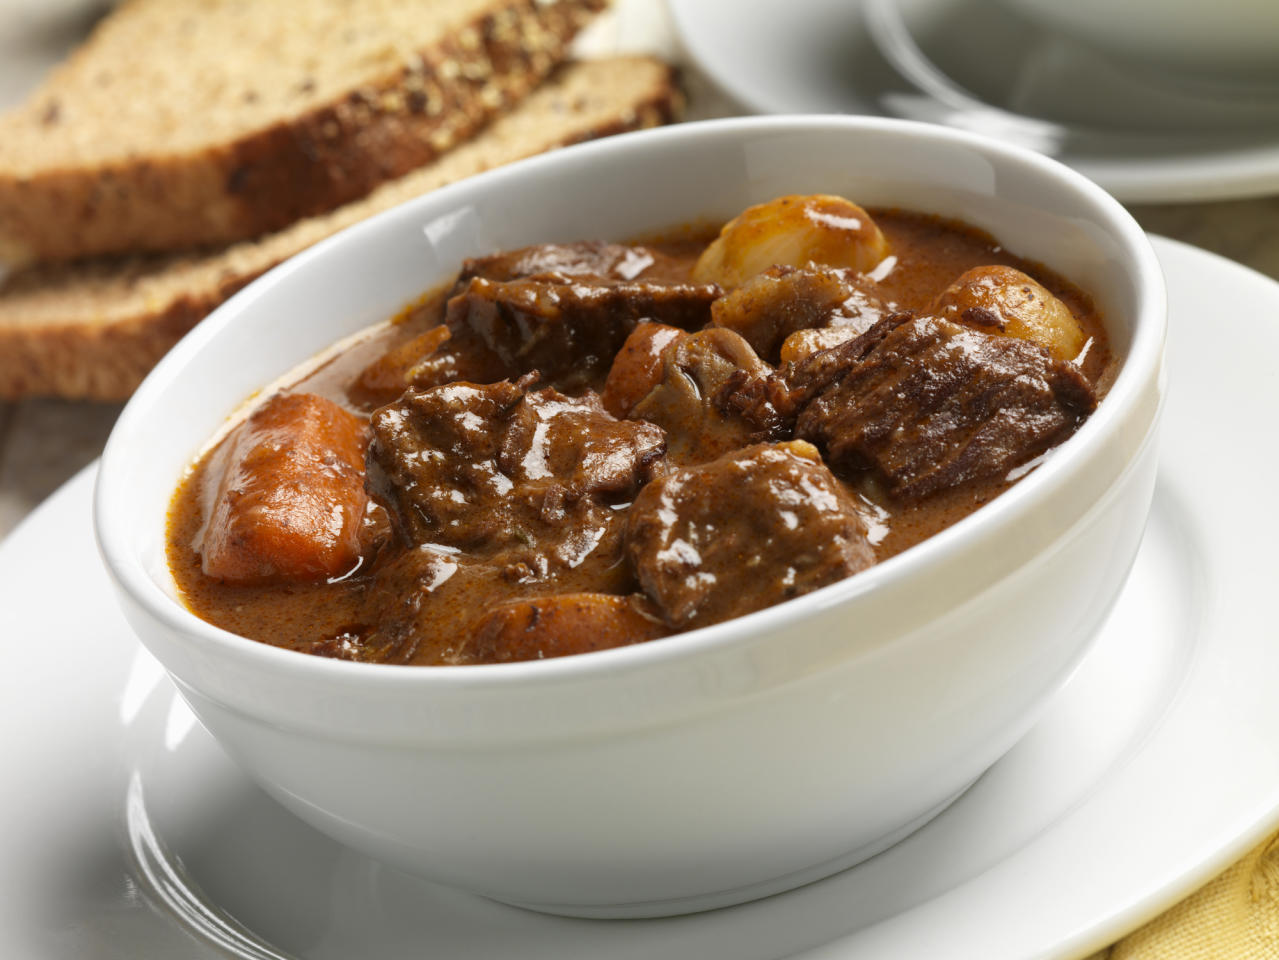 "<p>This is a classic. Simple, tasty, homely and warming. How about <a rel=""nofollow"" href=""https://www.jamieoliver.com/recipes/beef-recipes/jools-s-favourite-beef-stew/"">Jamie Oliver's recipe</a> – no wonder it's apparently his wife Jools' favourite? [Photo: Getty] </p>"